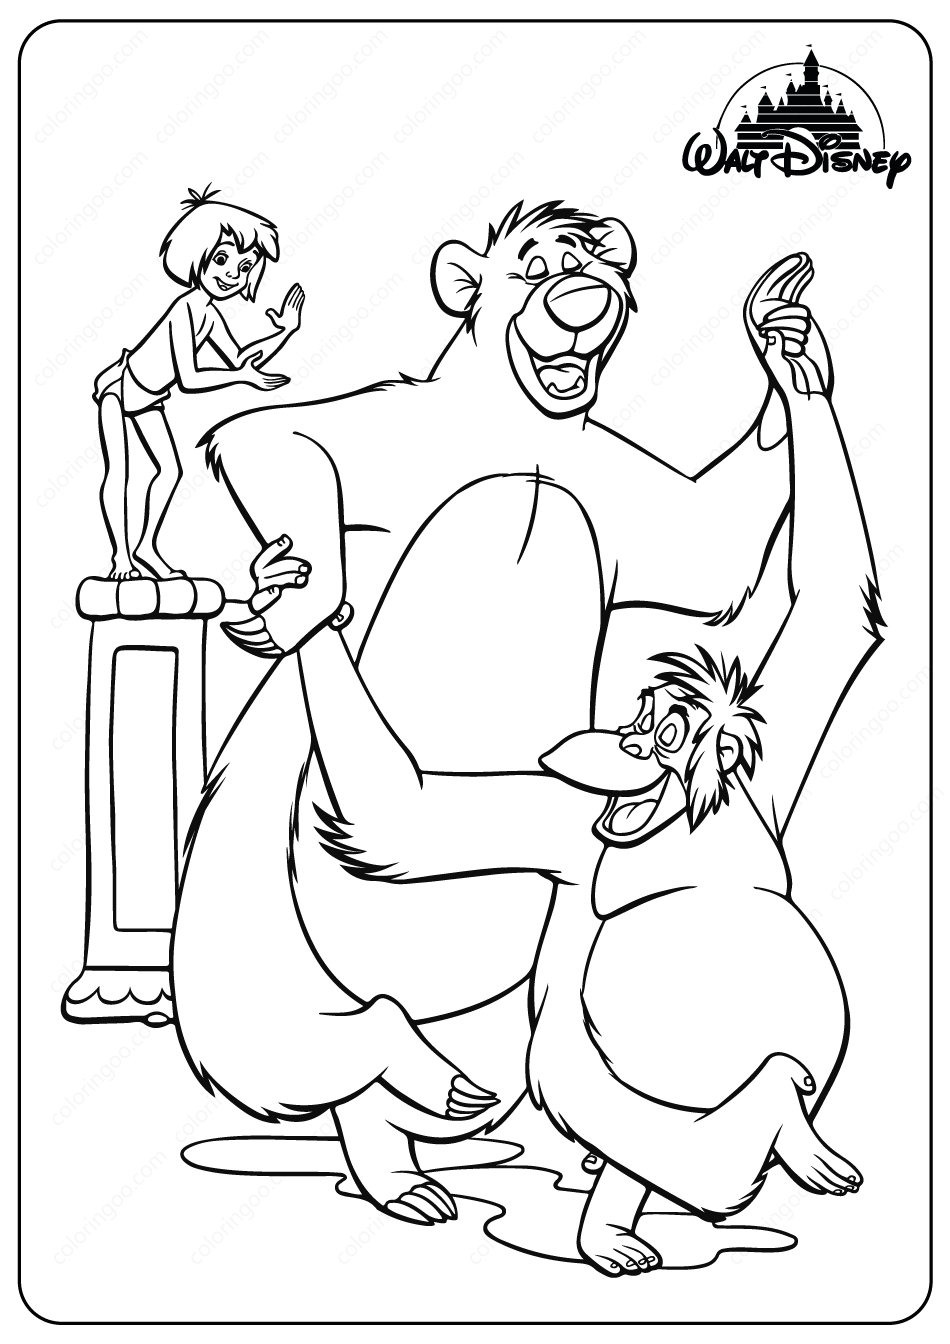 Printable Disney Jungle Book Baloo Coloring Pages in 2020